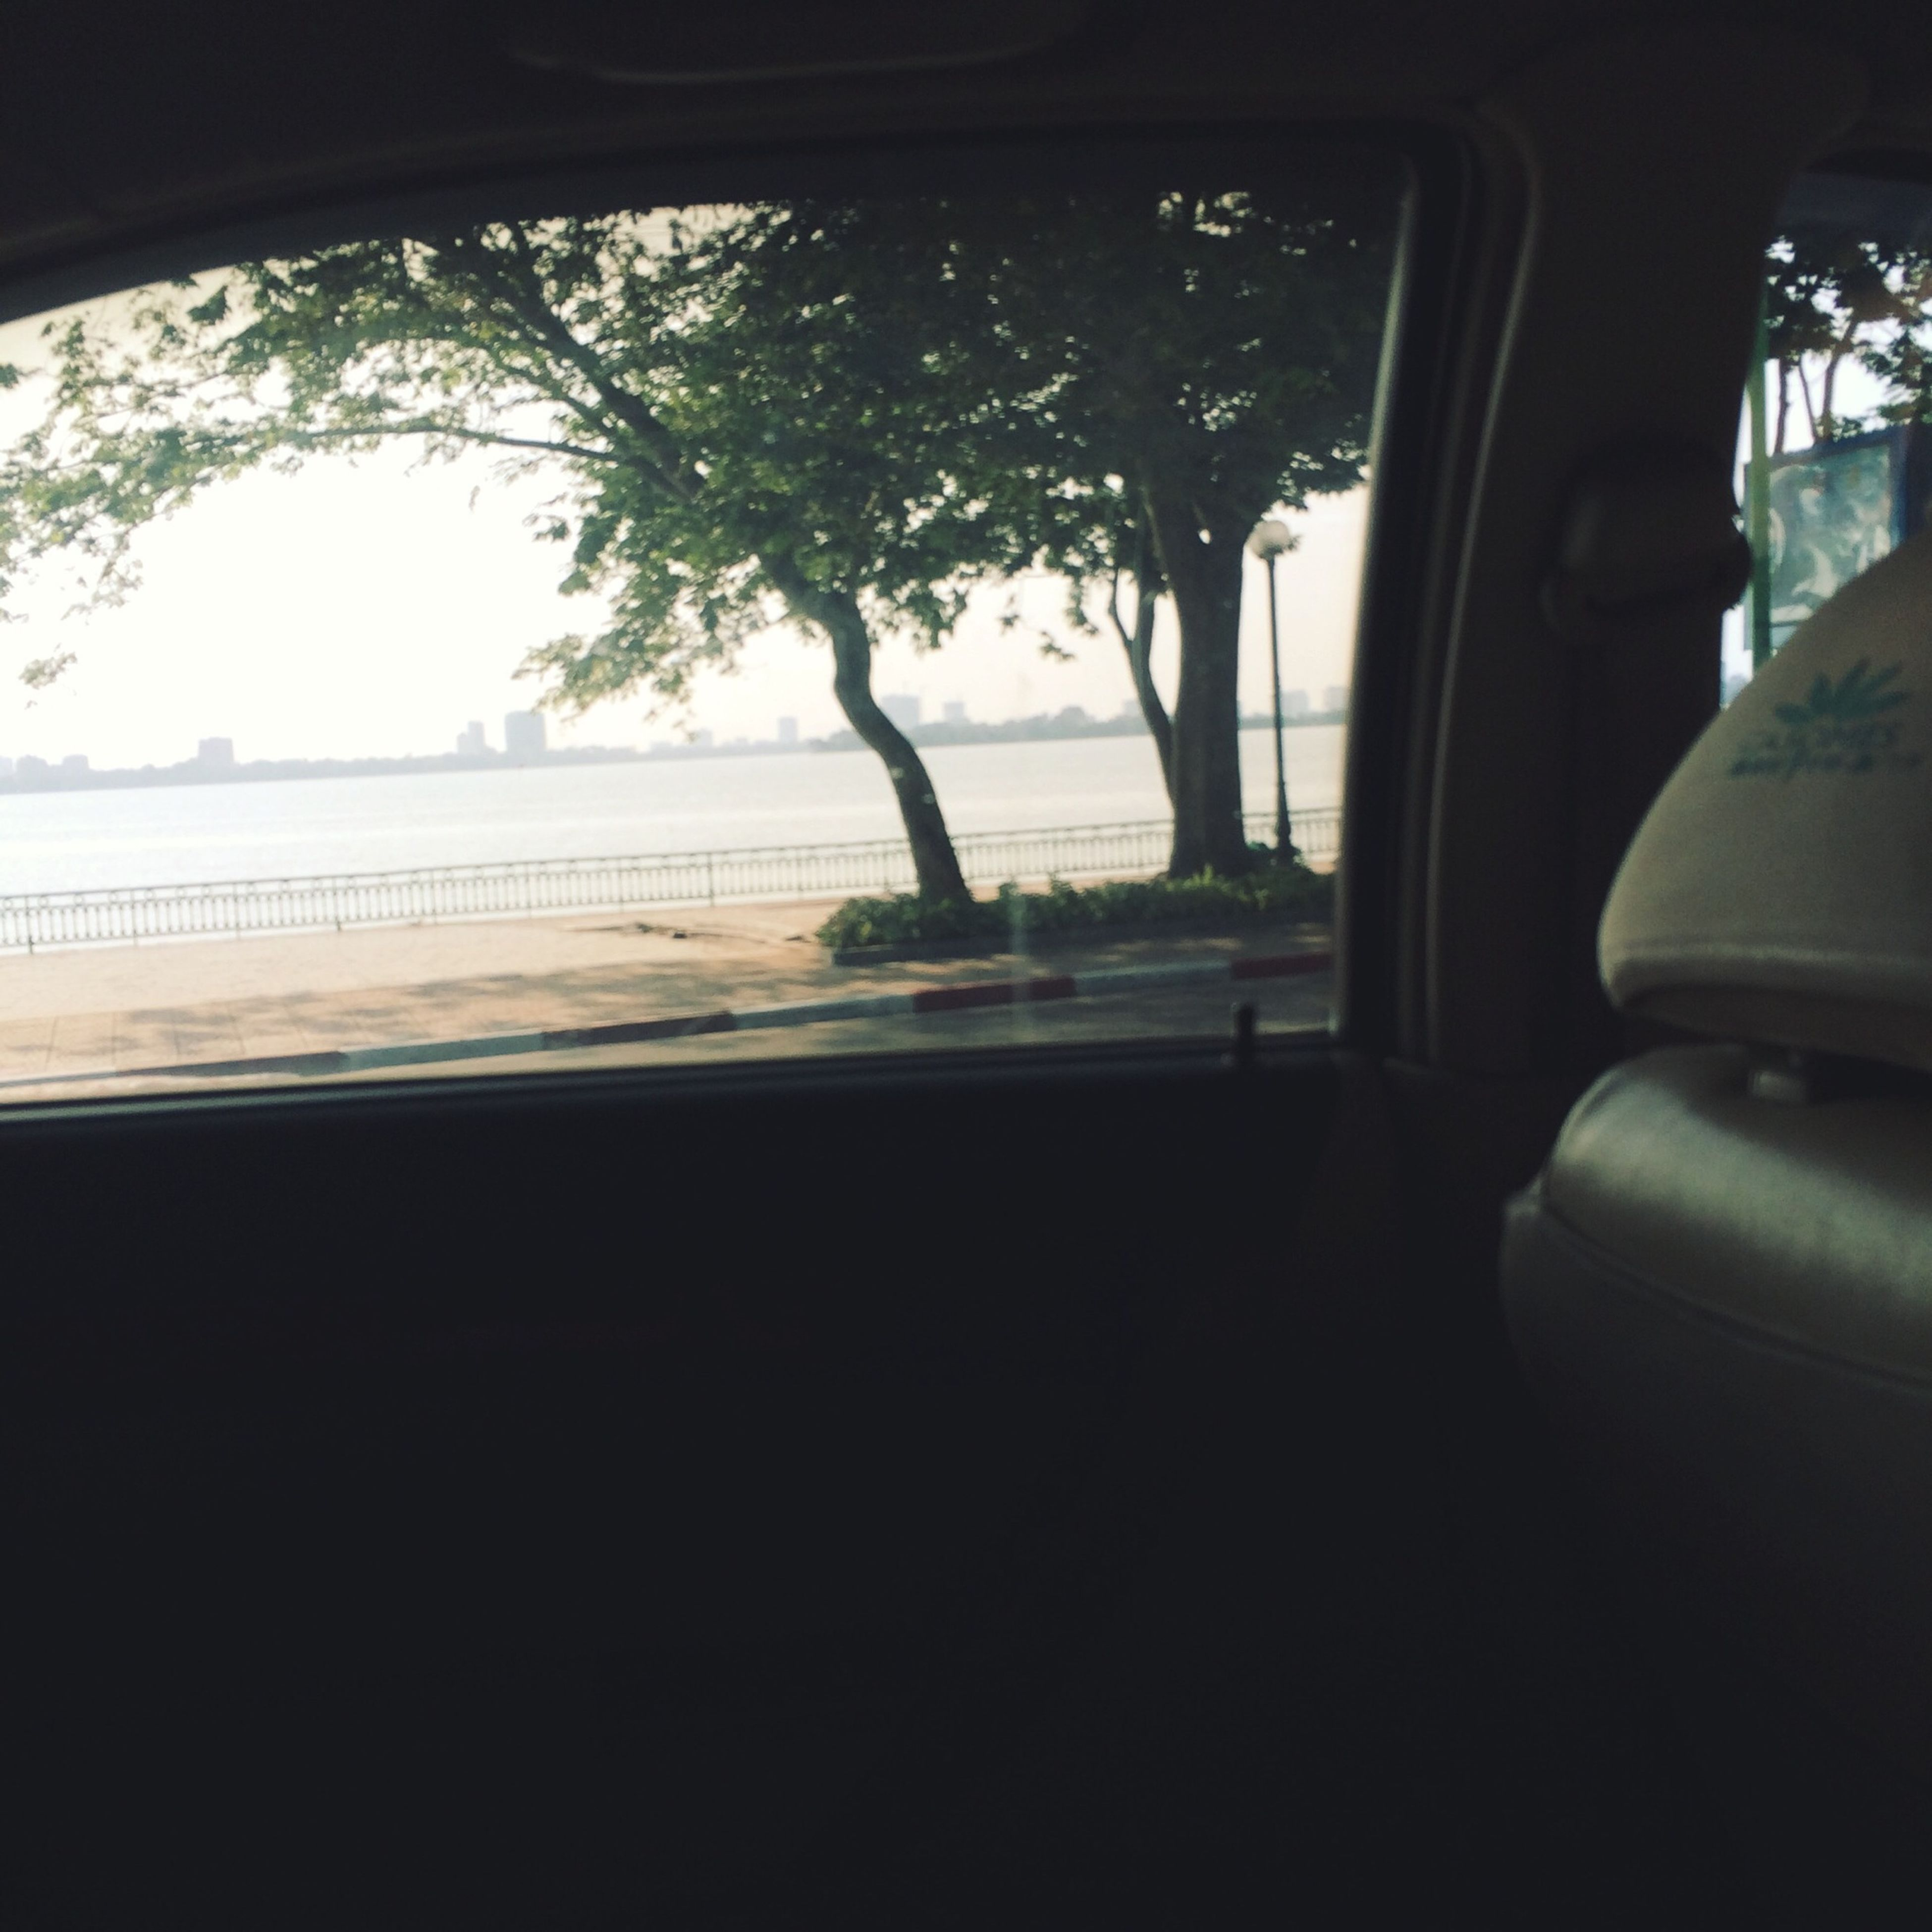 window, transportation, mode of transport, vehicle interior, glass - material, car, indoors, land vehicle, transparent, tree, looking through window, sky, travel, sunlight, windshield, car interior, road, day, no people, reflection